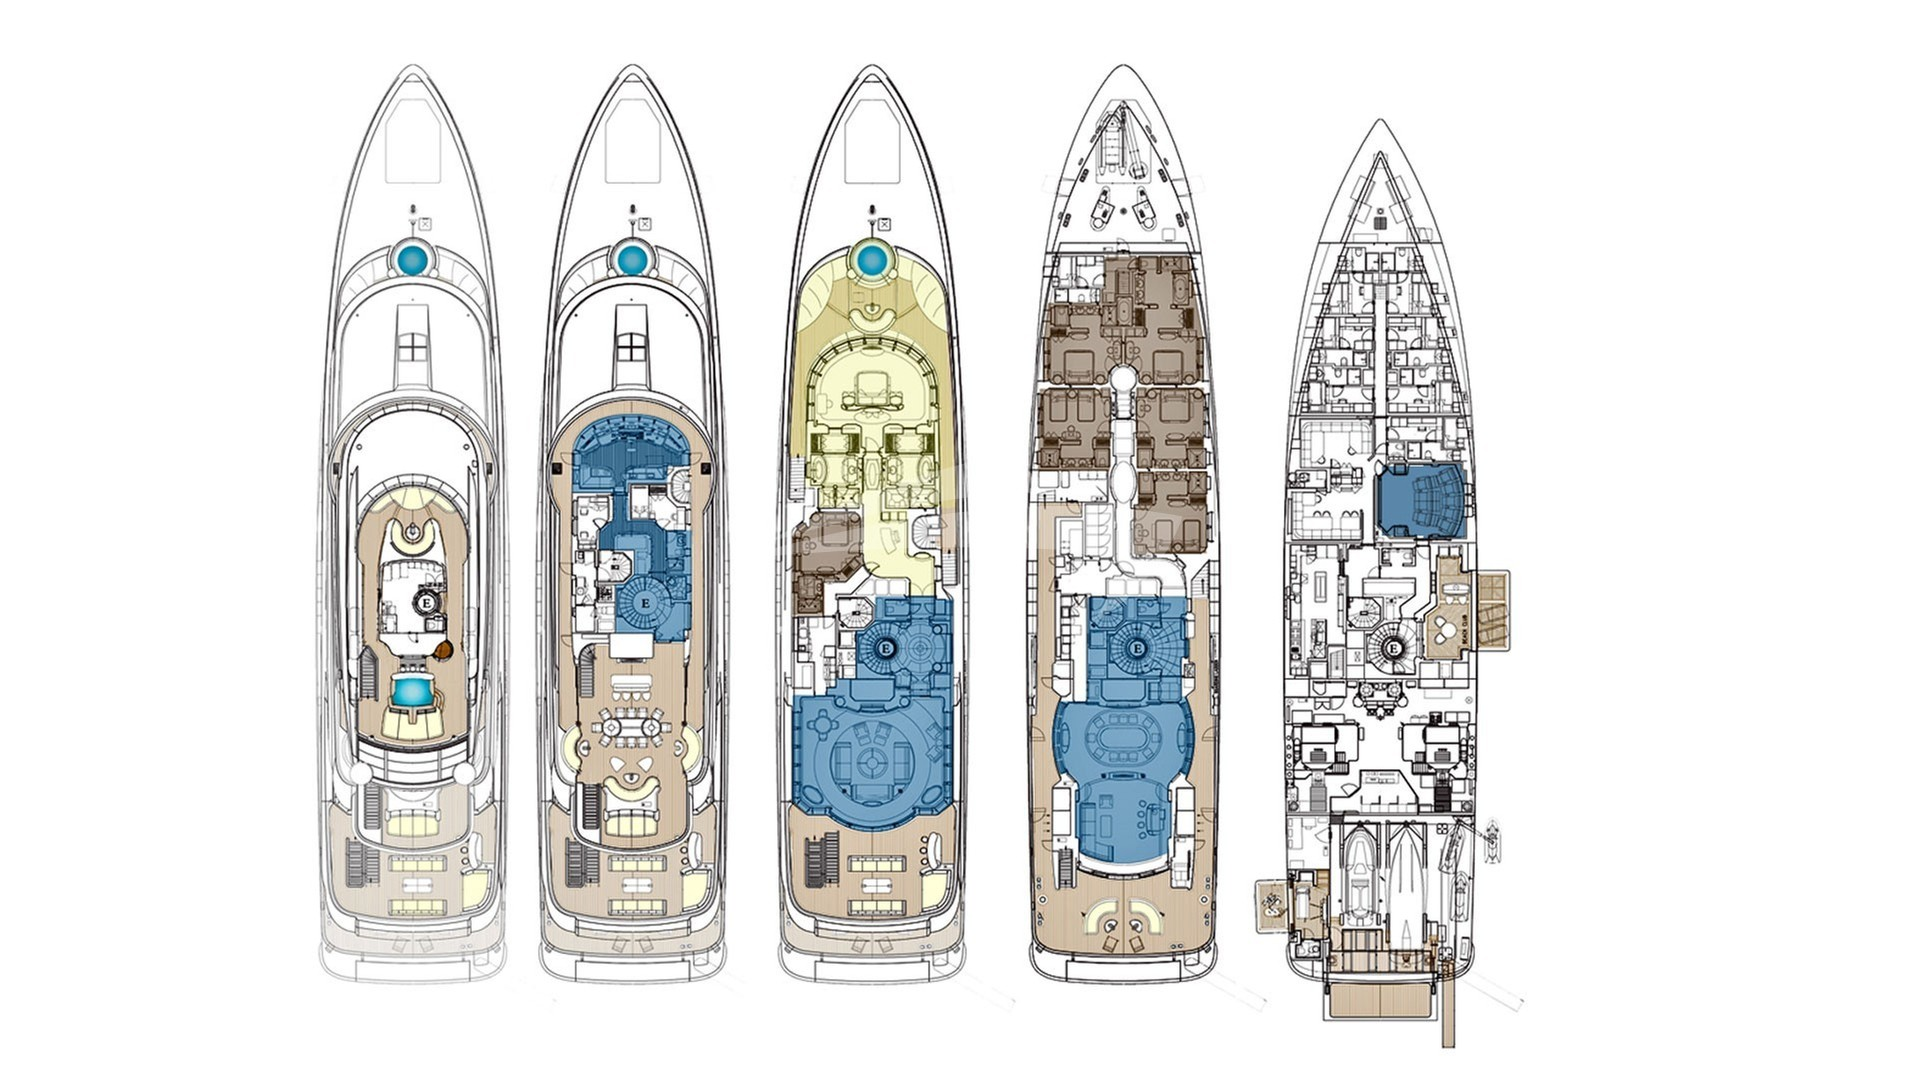 Luxury charter yacht layout diagram for EXCELLENCE V